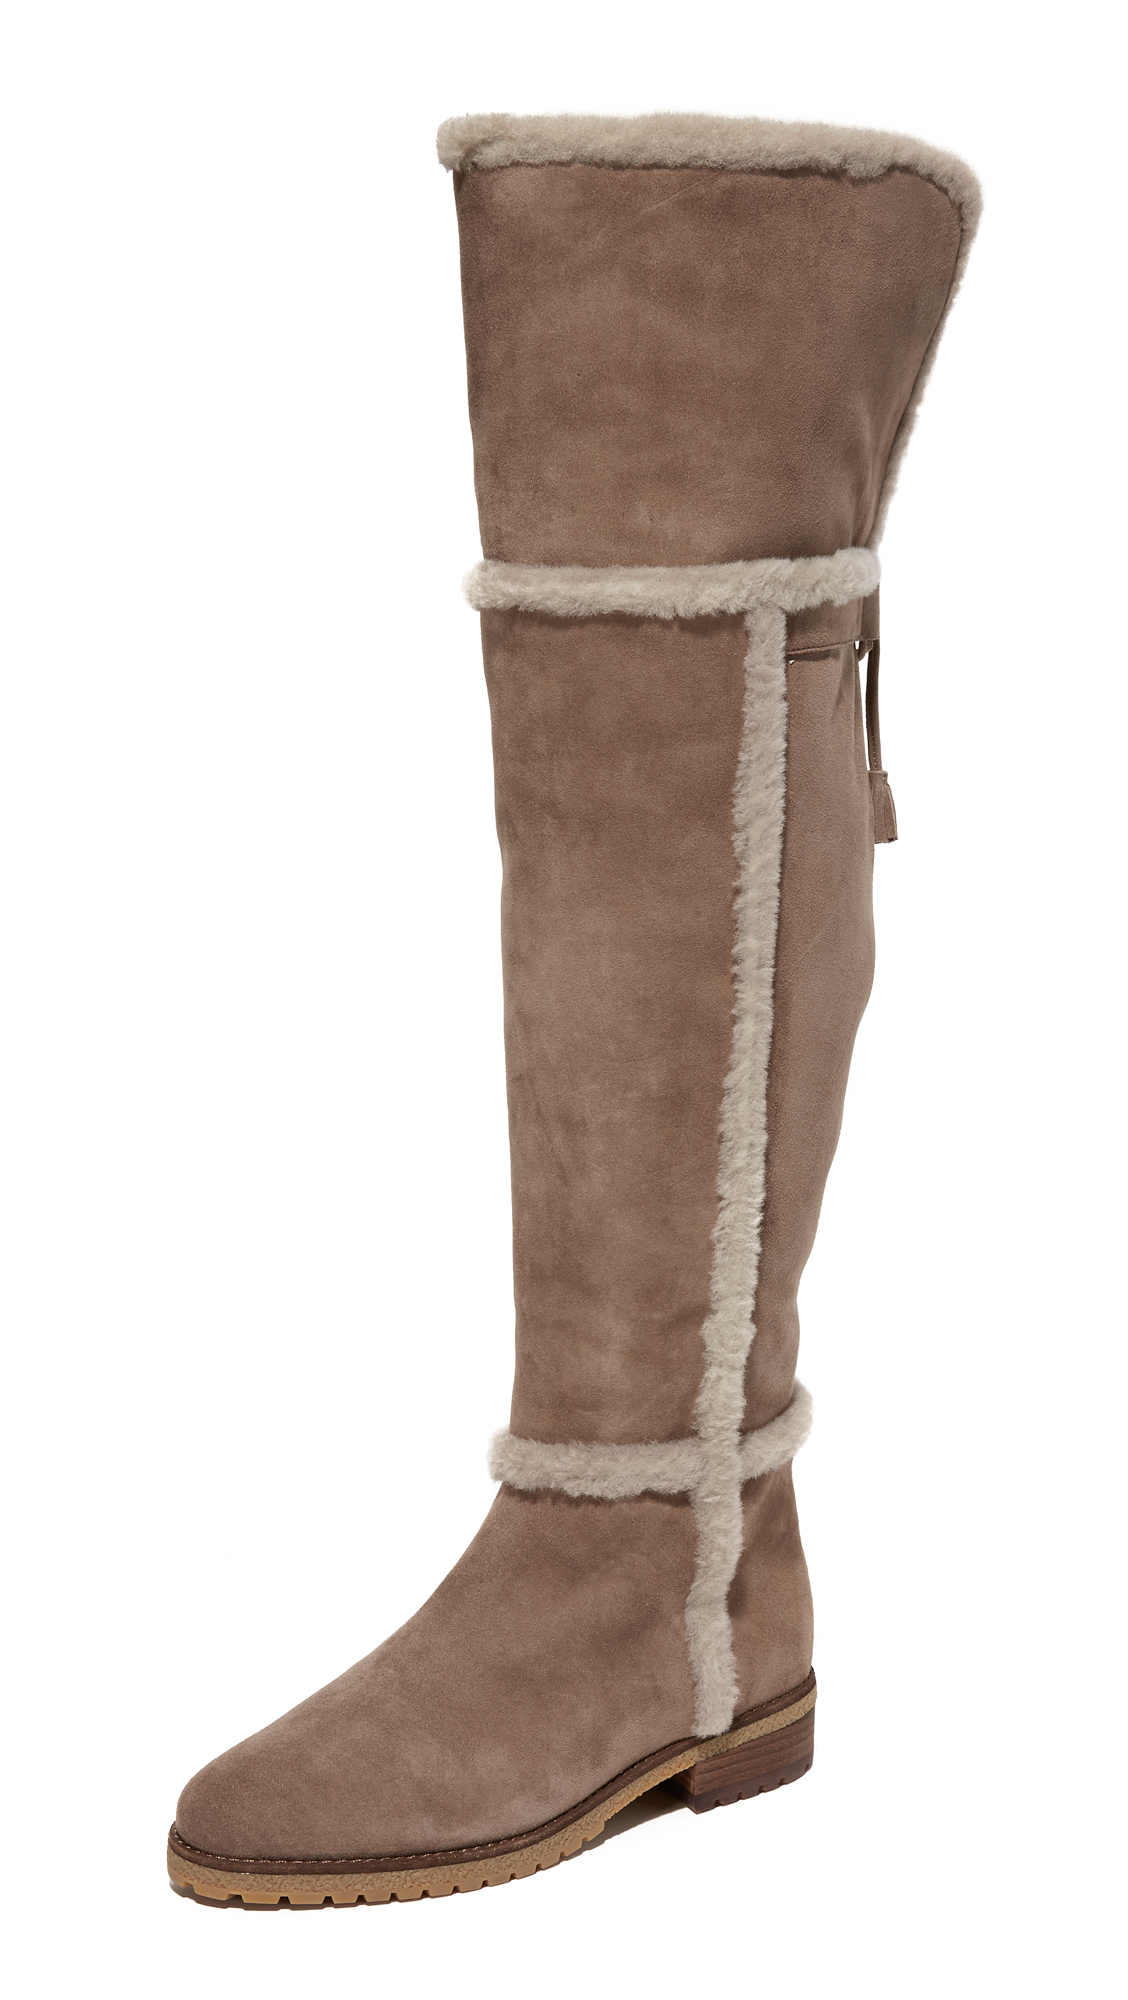 Frye Tamara Shearling Over The Knee Boots - Taupe